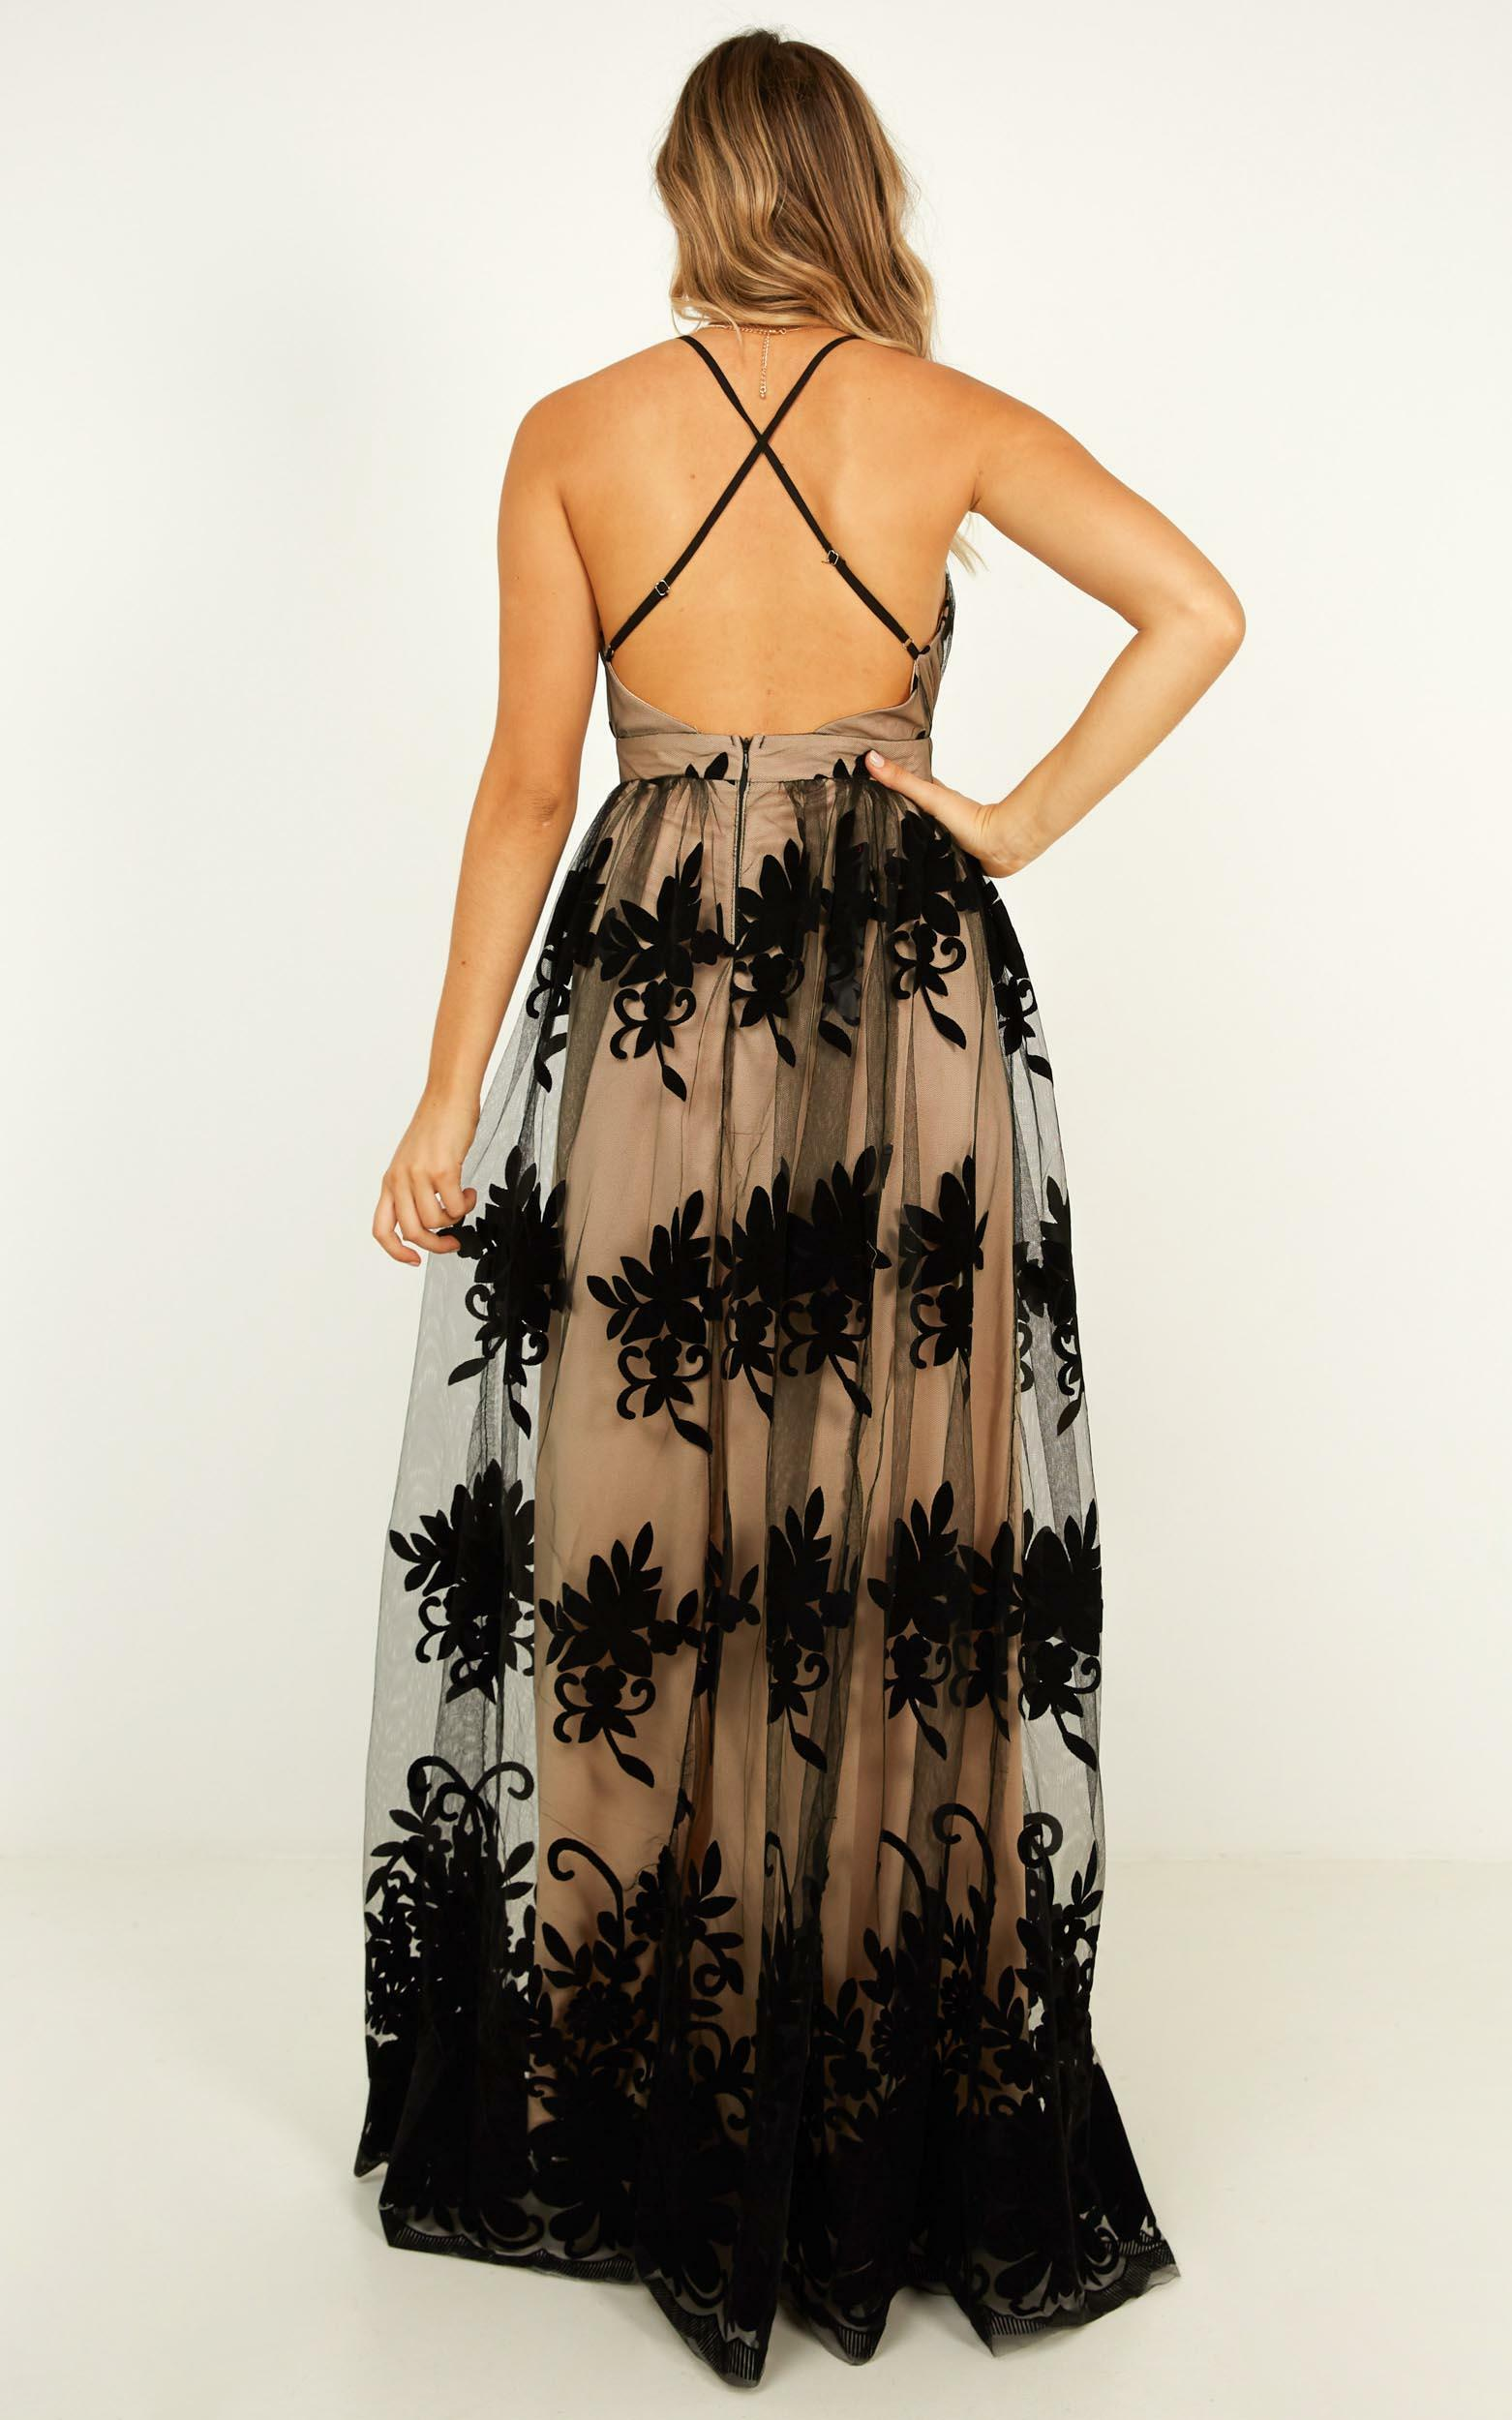 Promenade maxi dress in black and nude - 12 (L), Black, hi-res image number null